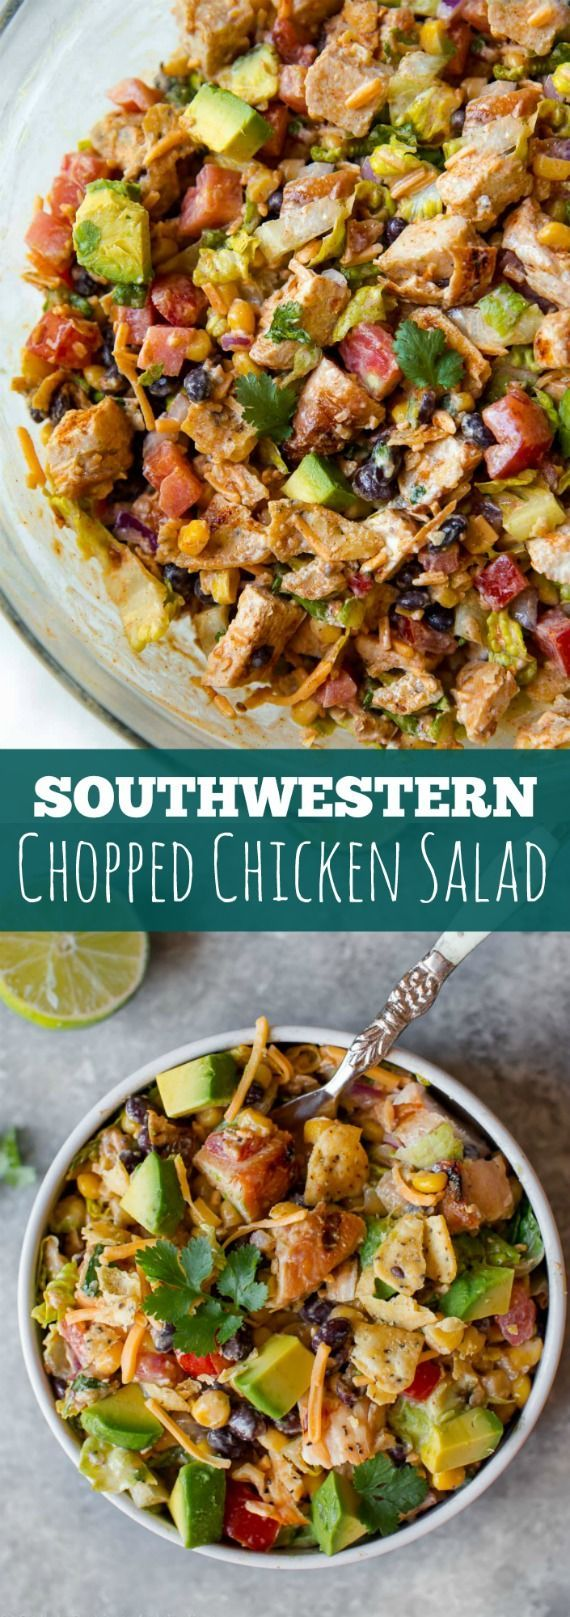 Southwestern Chopped Chicken Salad | Sally's Baking Addiction